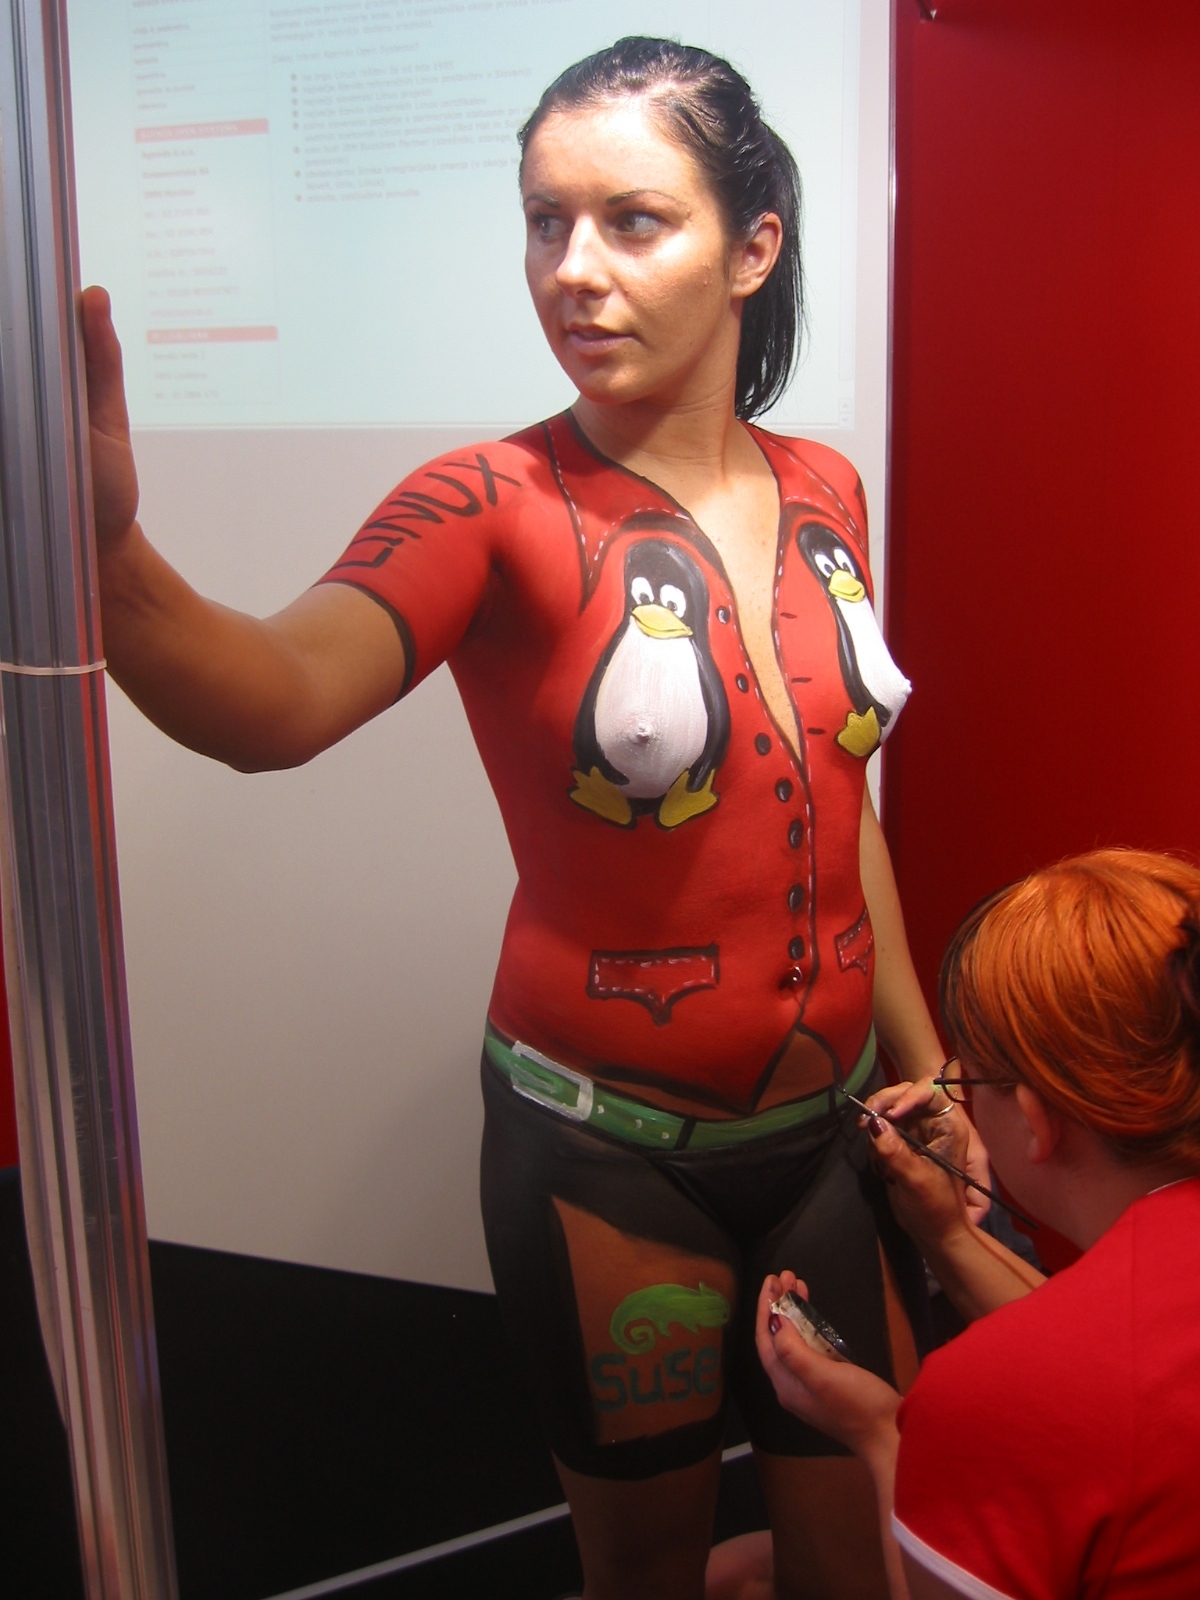 http://upload.wikimedia.org/wikipedia/commons/d/df/Body_painting.JPG